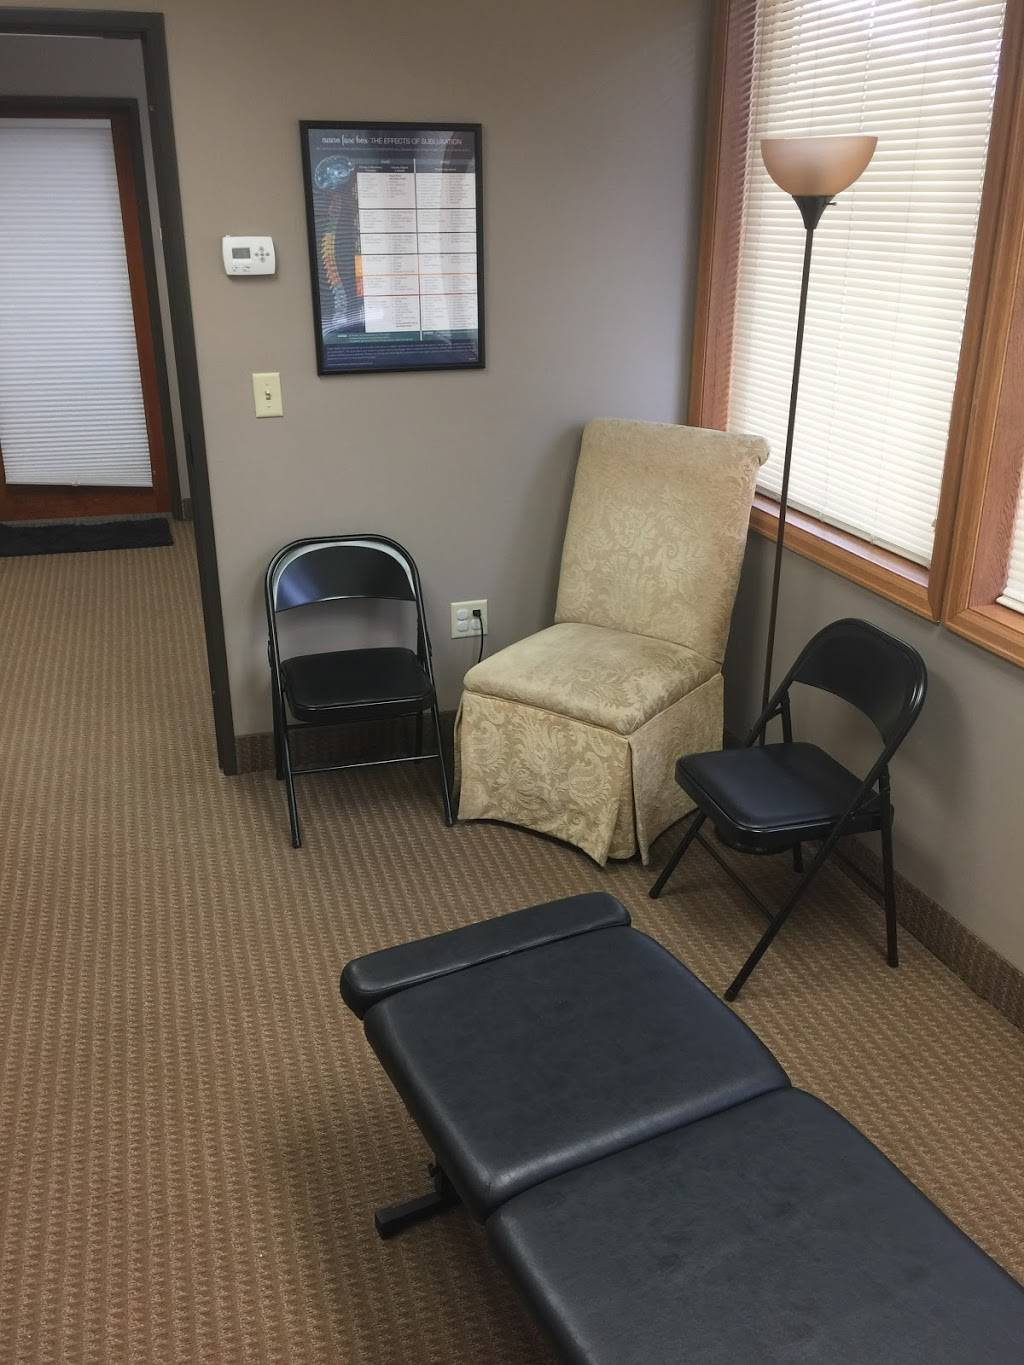 True Life Chiropractic - health  | Photo 4 of 7 | Address: 13780 E Rice Pl Suite 114, Aurora, CO 80015, USA | Phone: (940) 293-5507